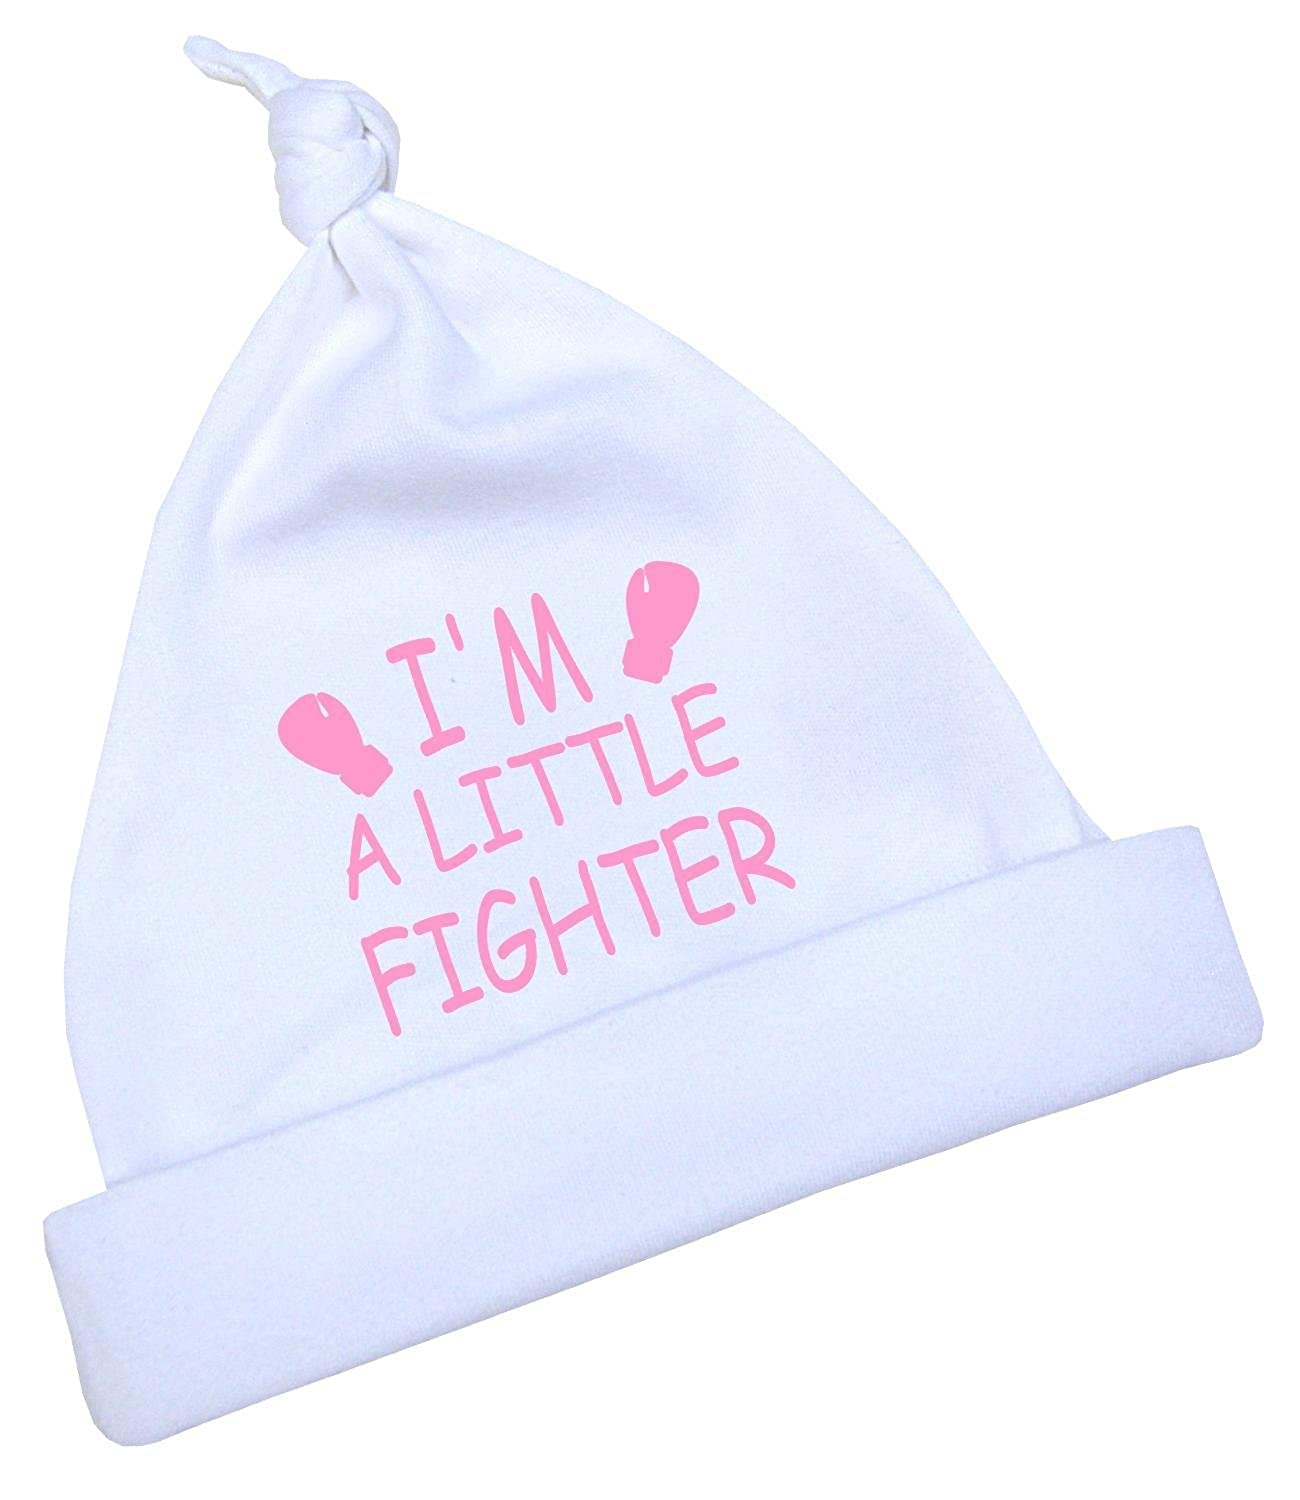 BabyPrem Premature Baby Hat Little Fighter Boy Girl Clothes 1.5-7.5lb LB005LF